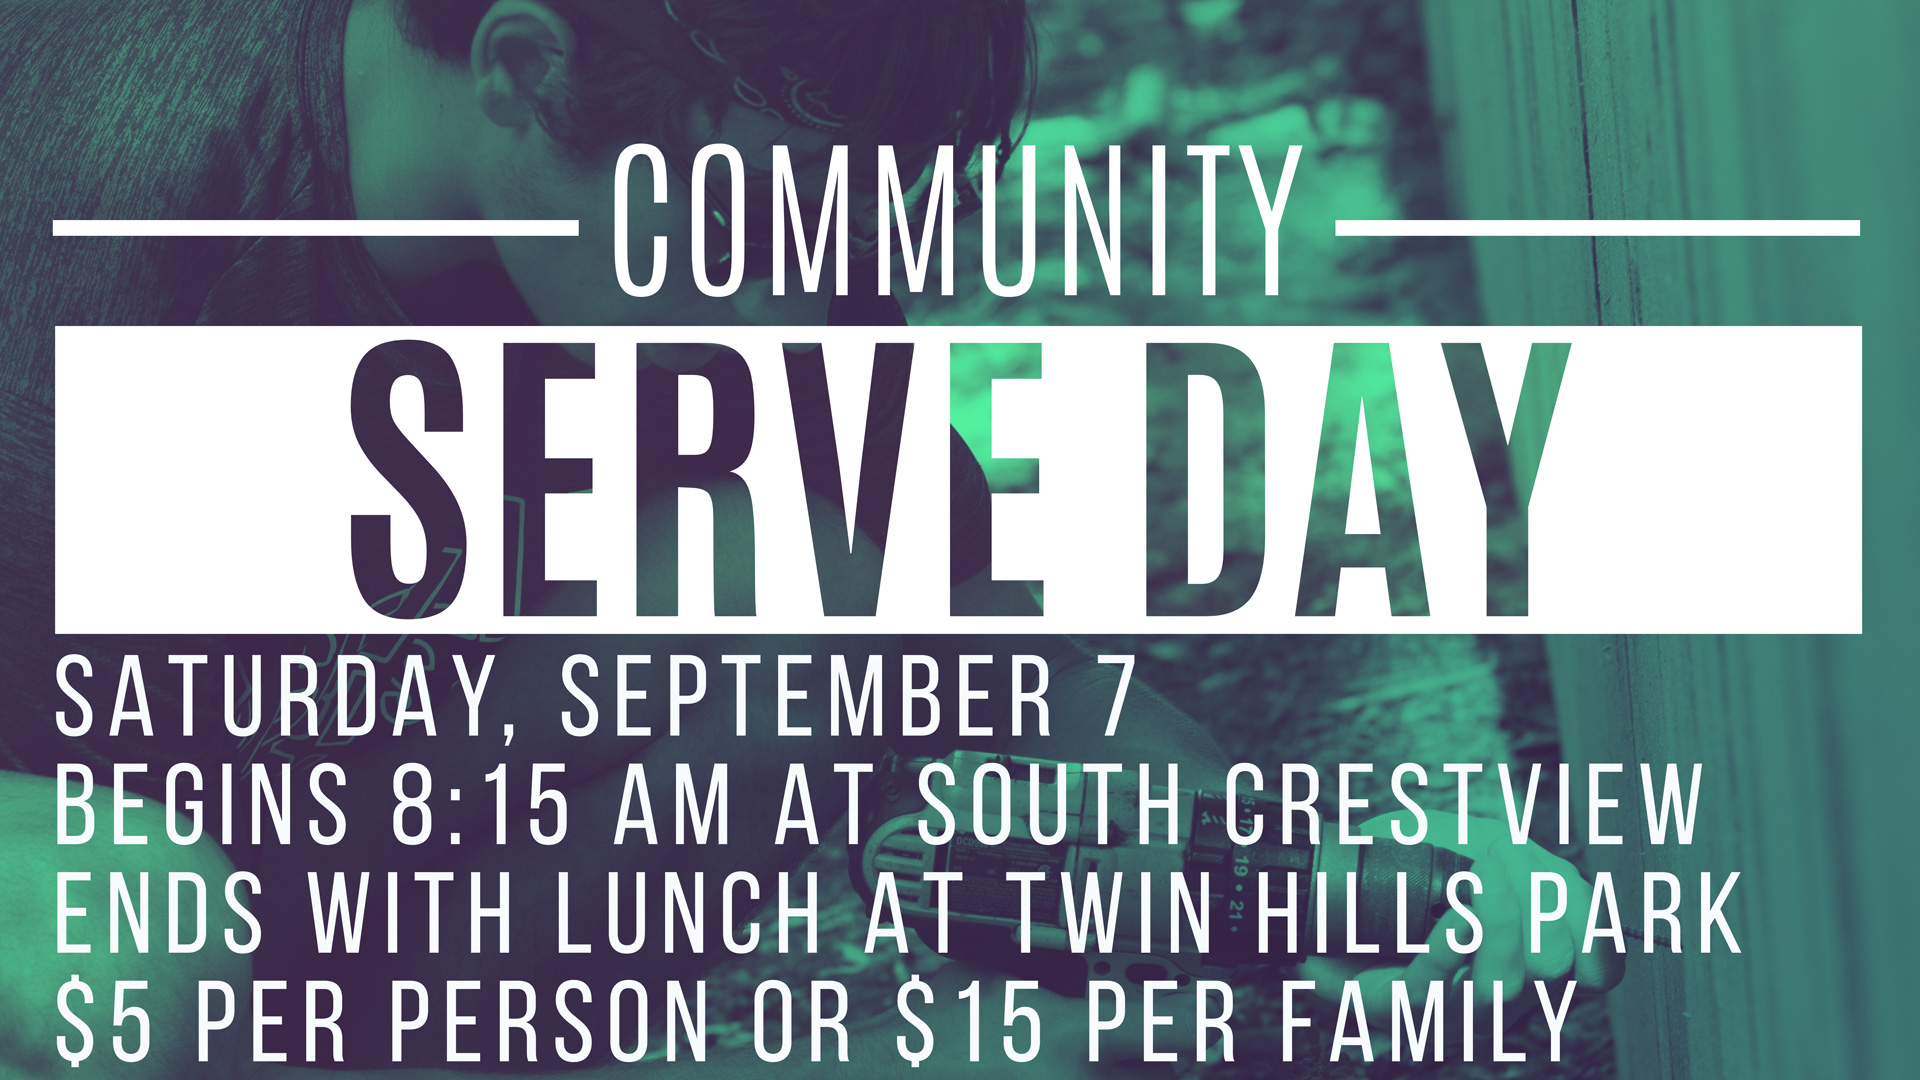 Community Serve Day 2019 (South Crestview Campus)